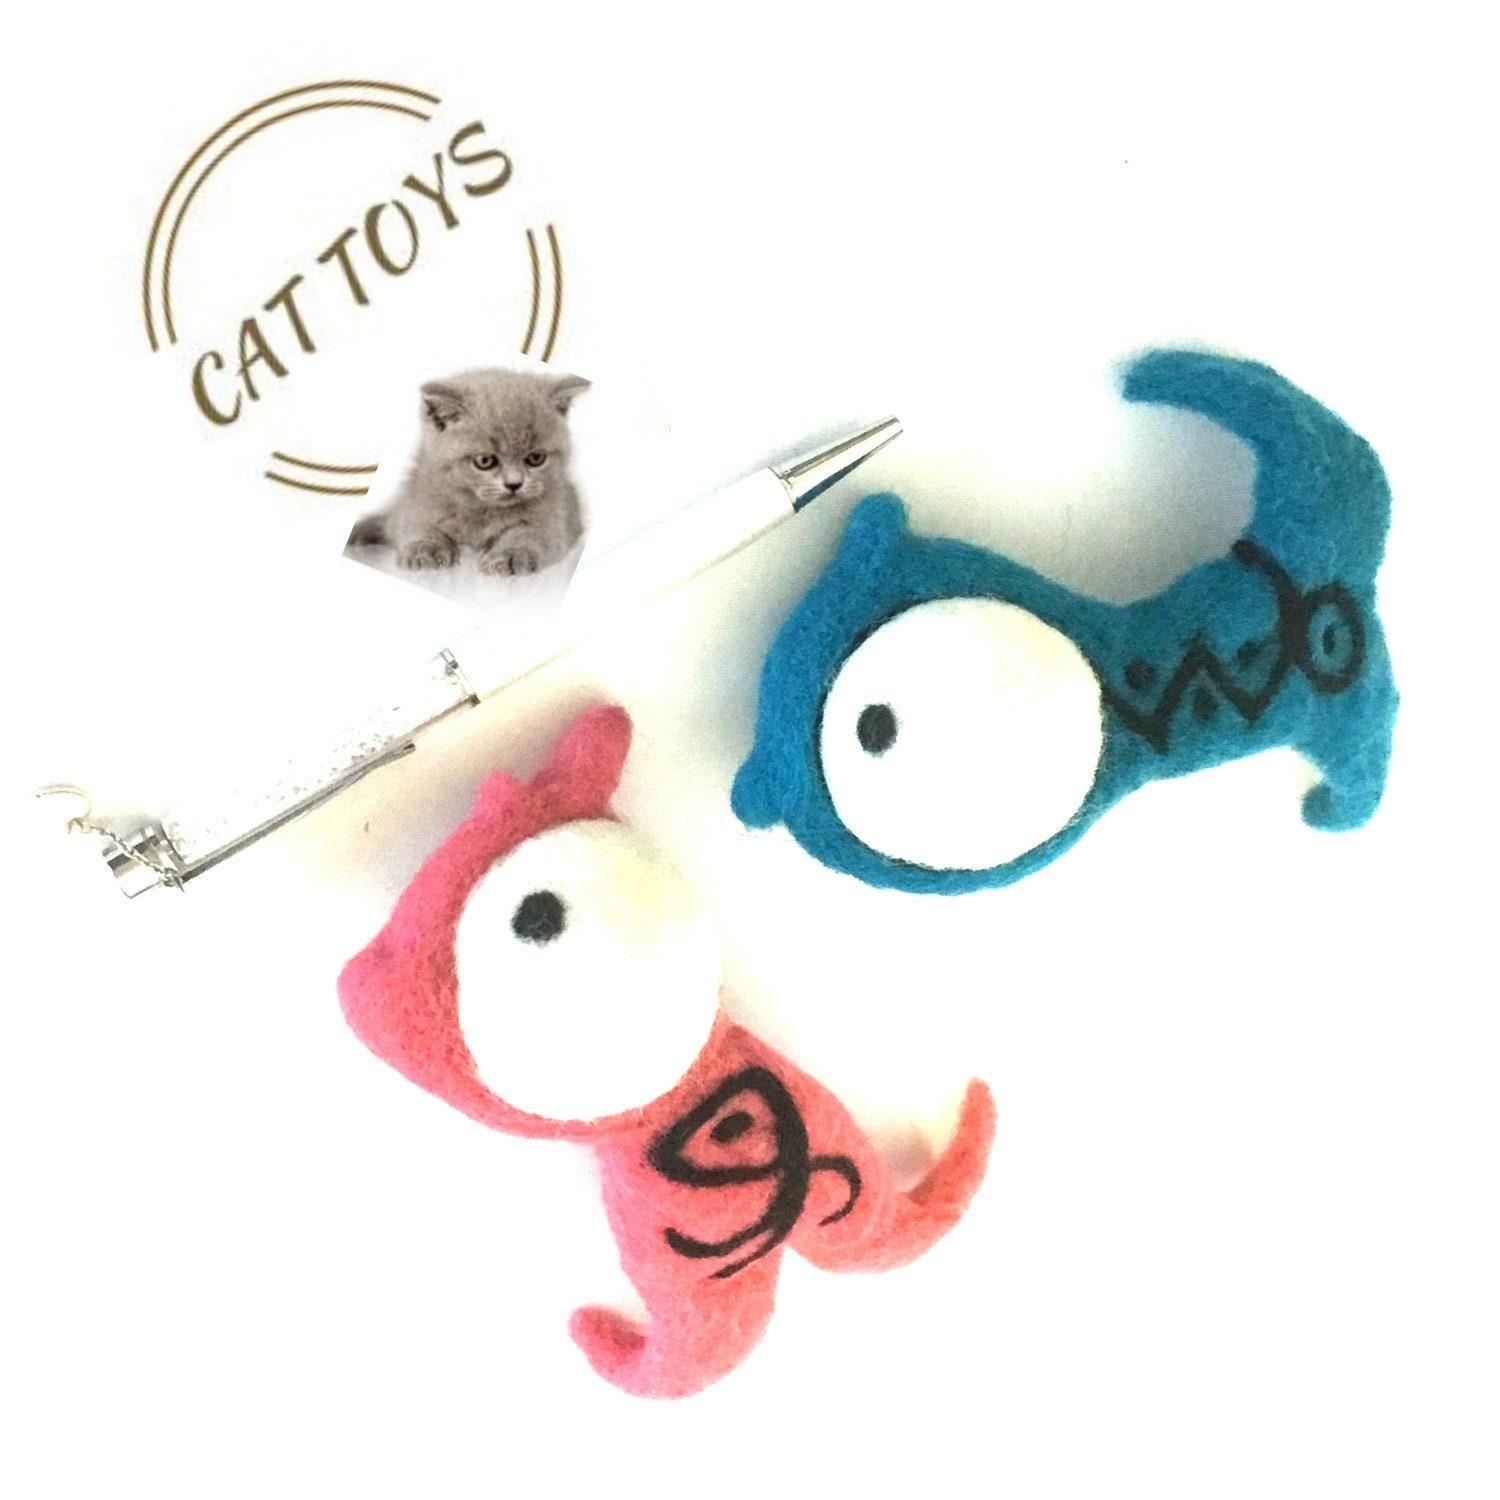 cute fish cat toys felted catnip toys felted wool cat play toys